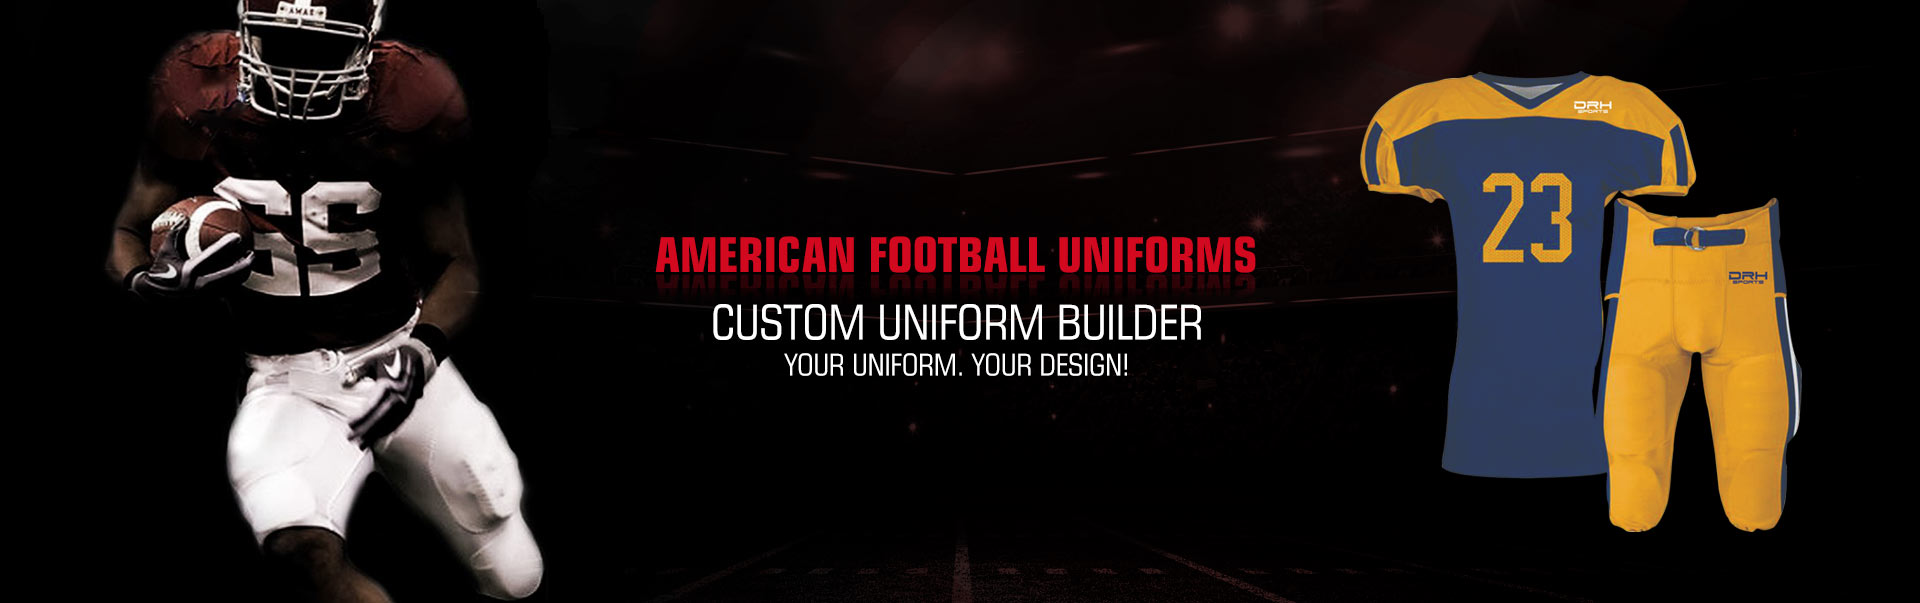 American Football Uniform Wholesaler, Suppliers in Palmdale